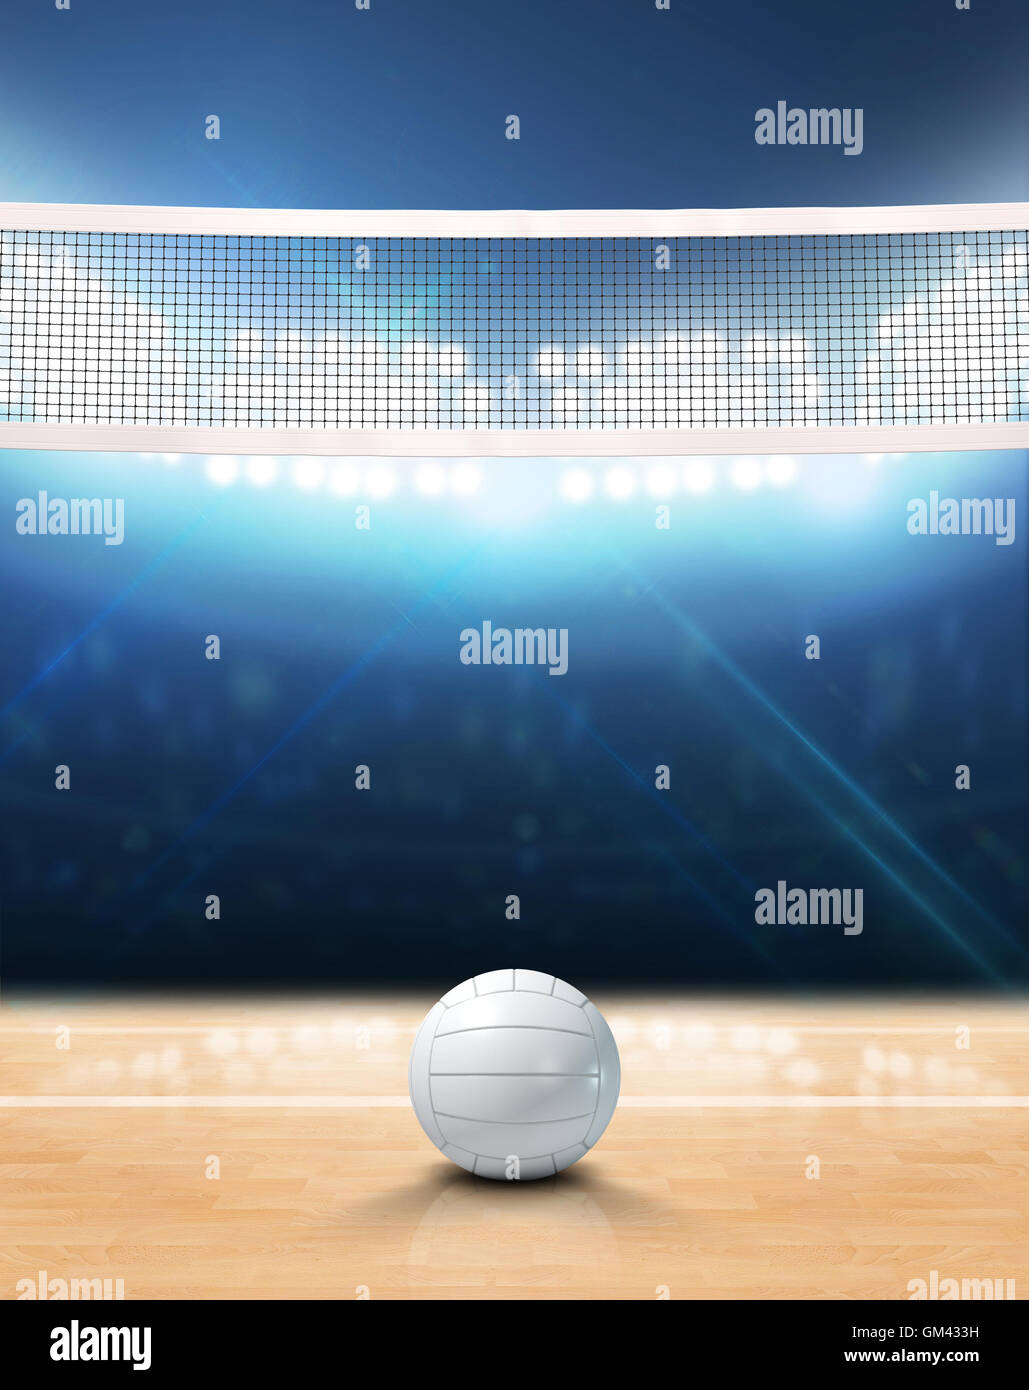 A 3D rendering of an indoor volleyball court with a net and ball ...